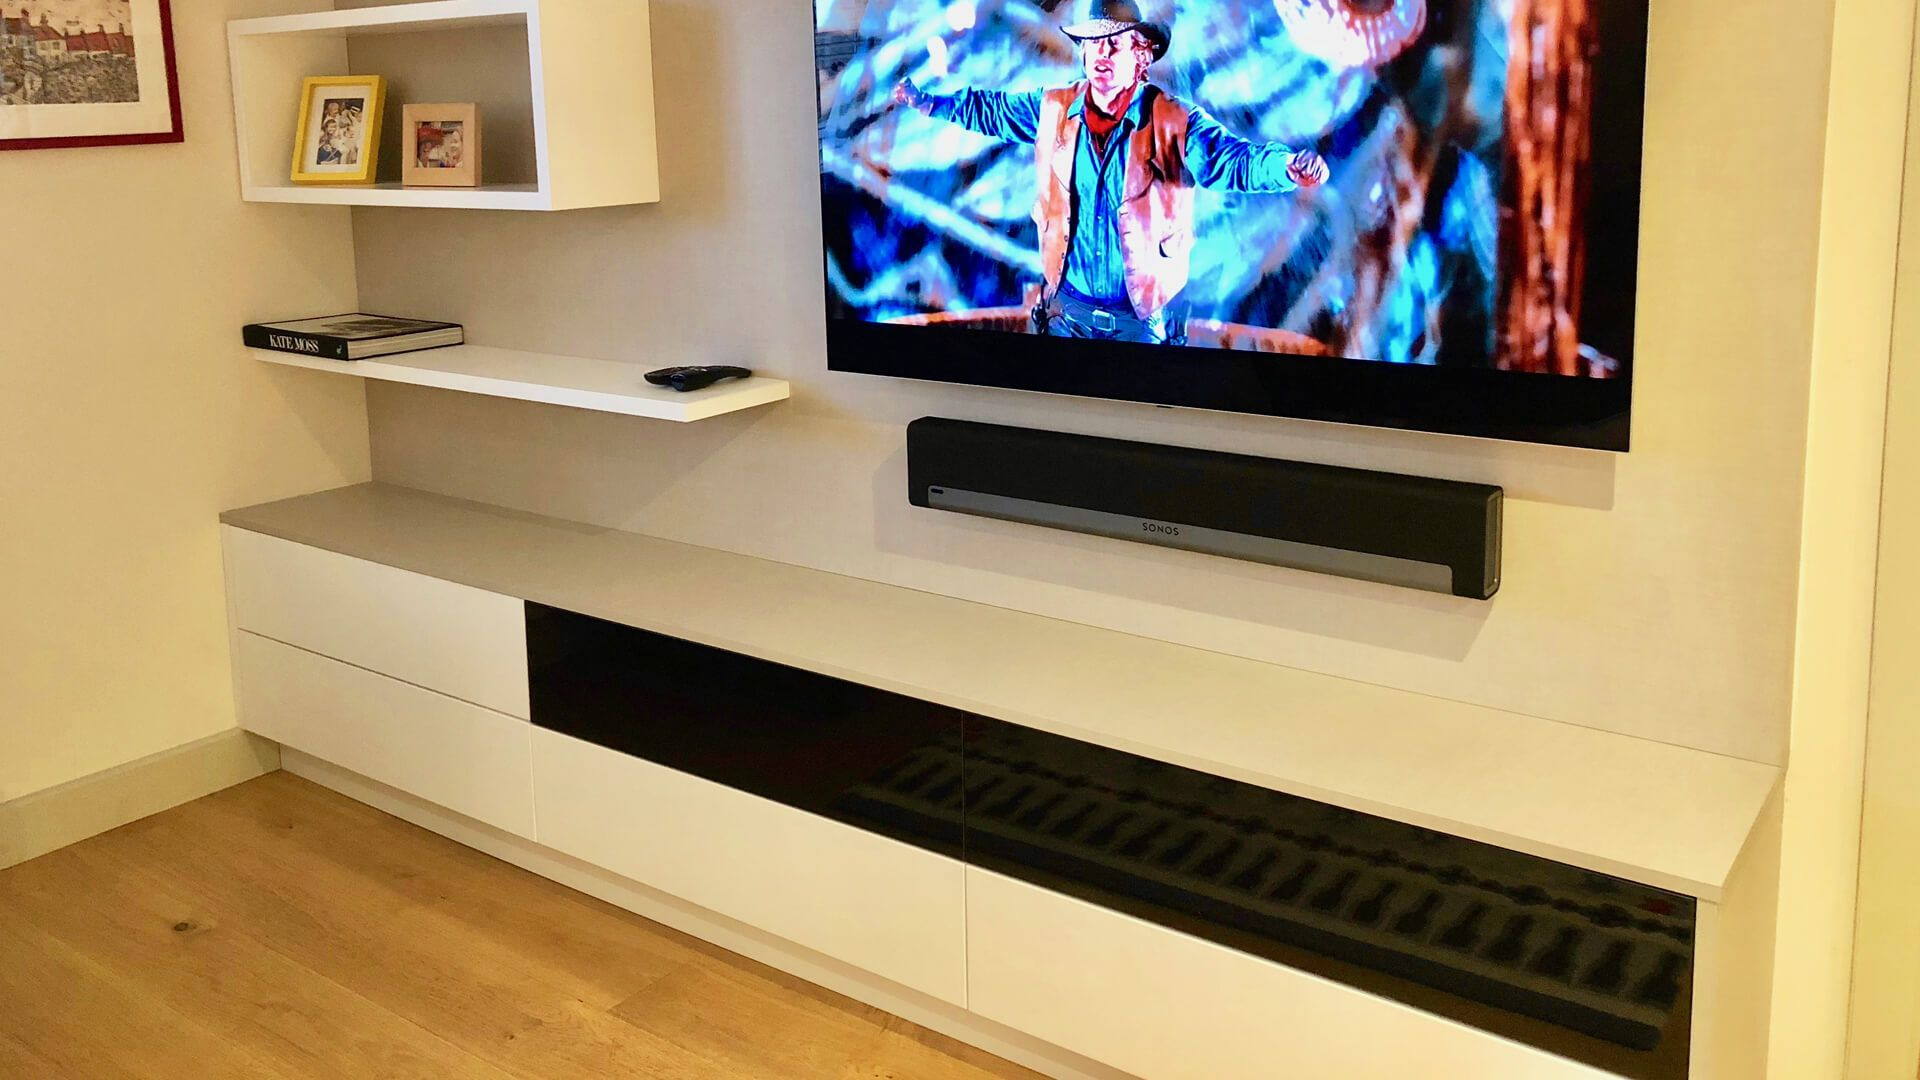 Bespoke wooden furniture - Media wall and cupboards | Bespoke ...